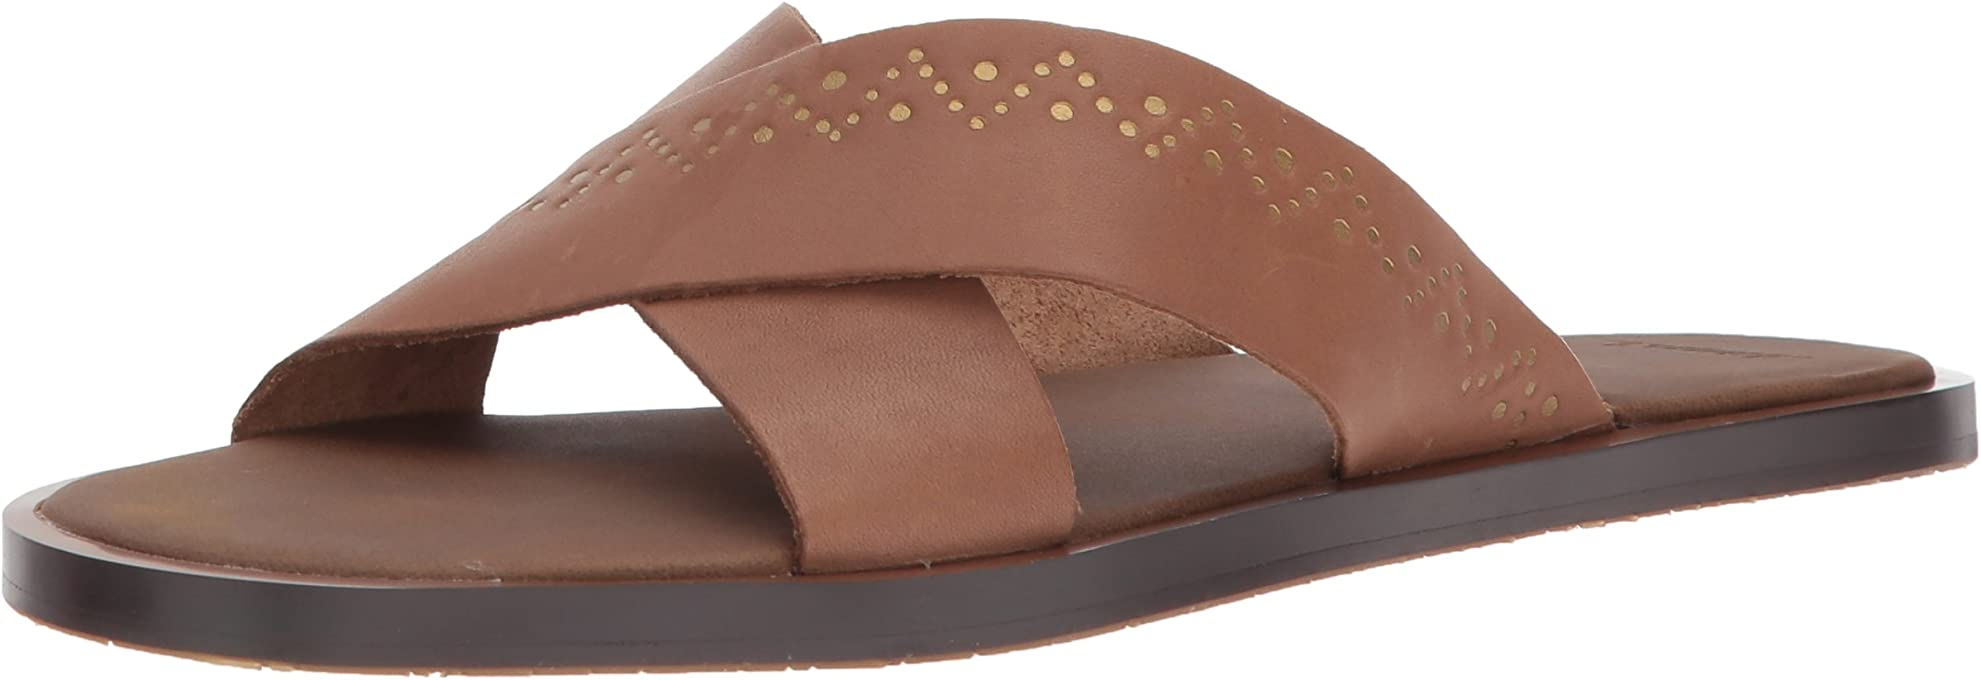 Sanuk Women's Yoga Adley Sandal